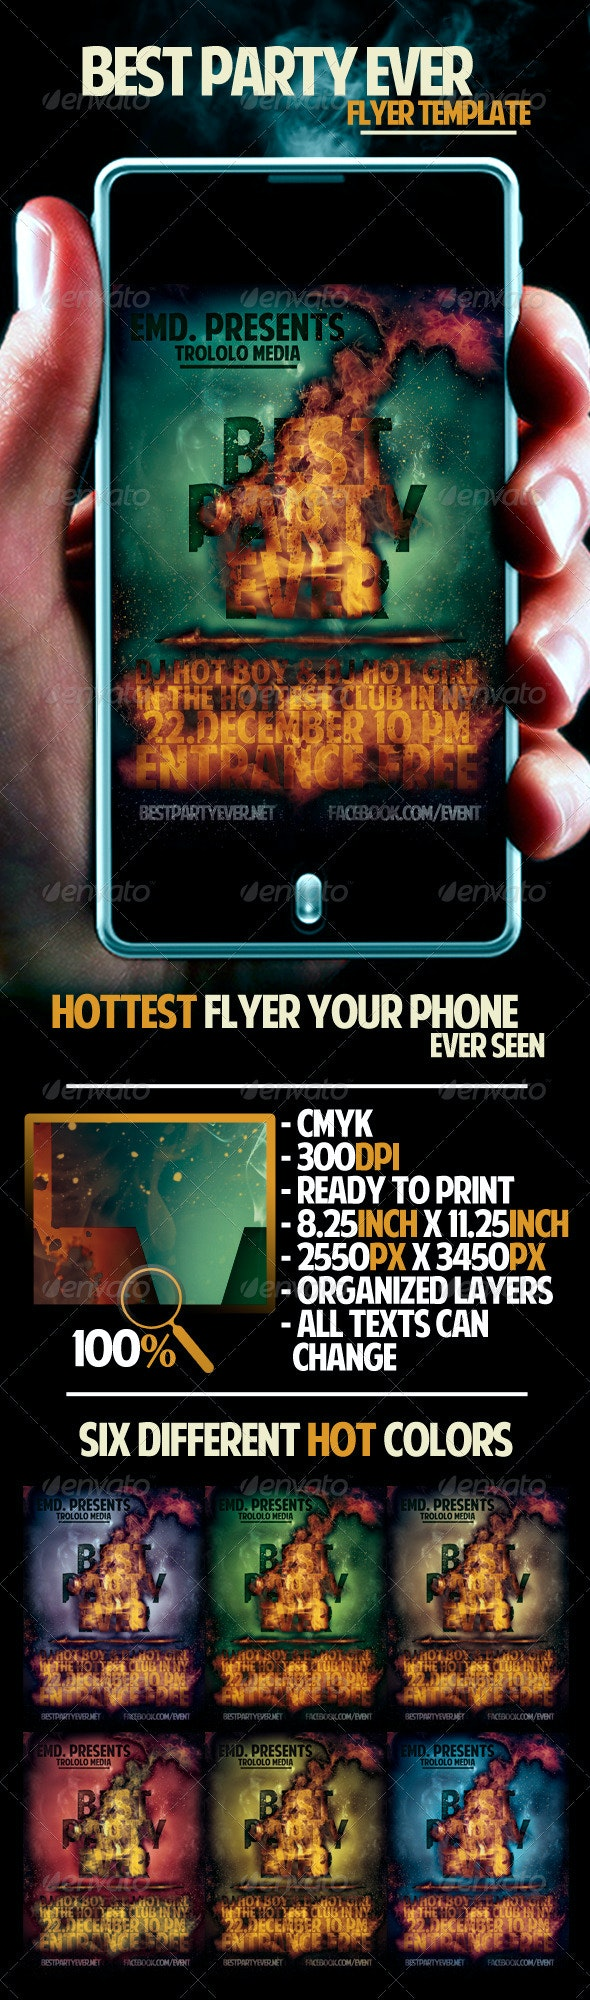 Party Ever Flyer Template - Clubs & Parties Events